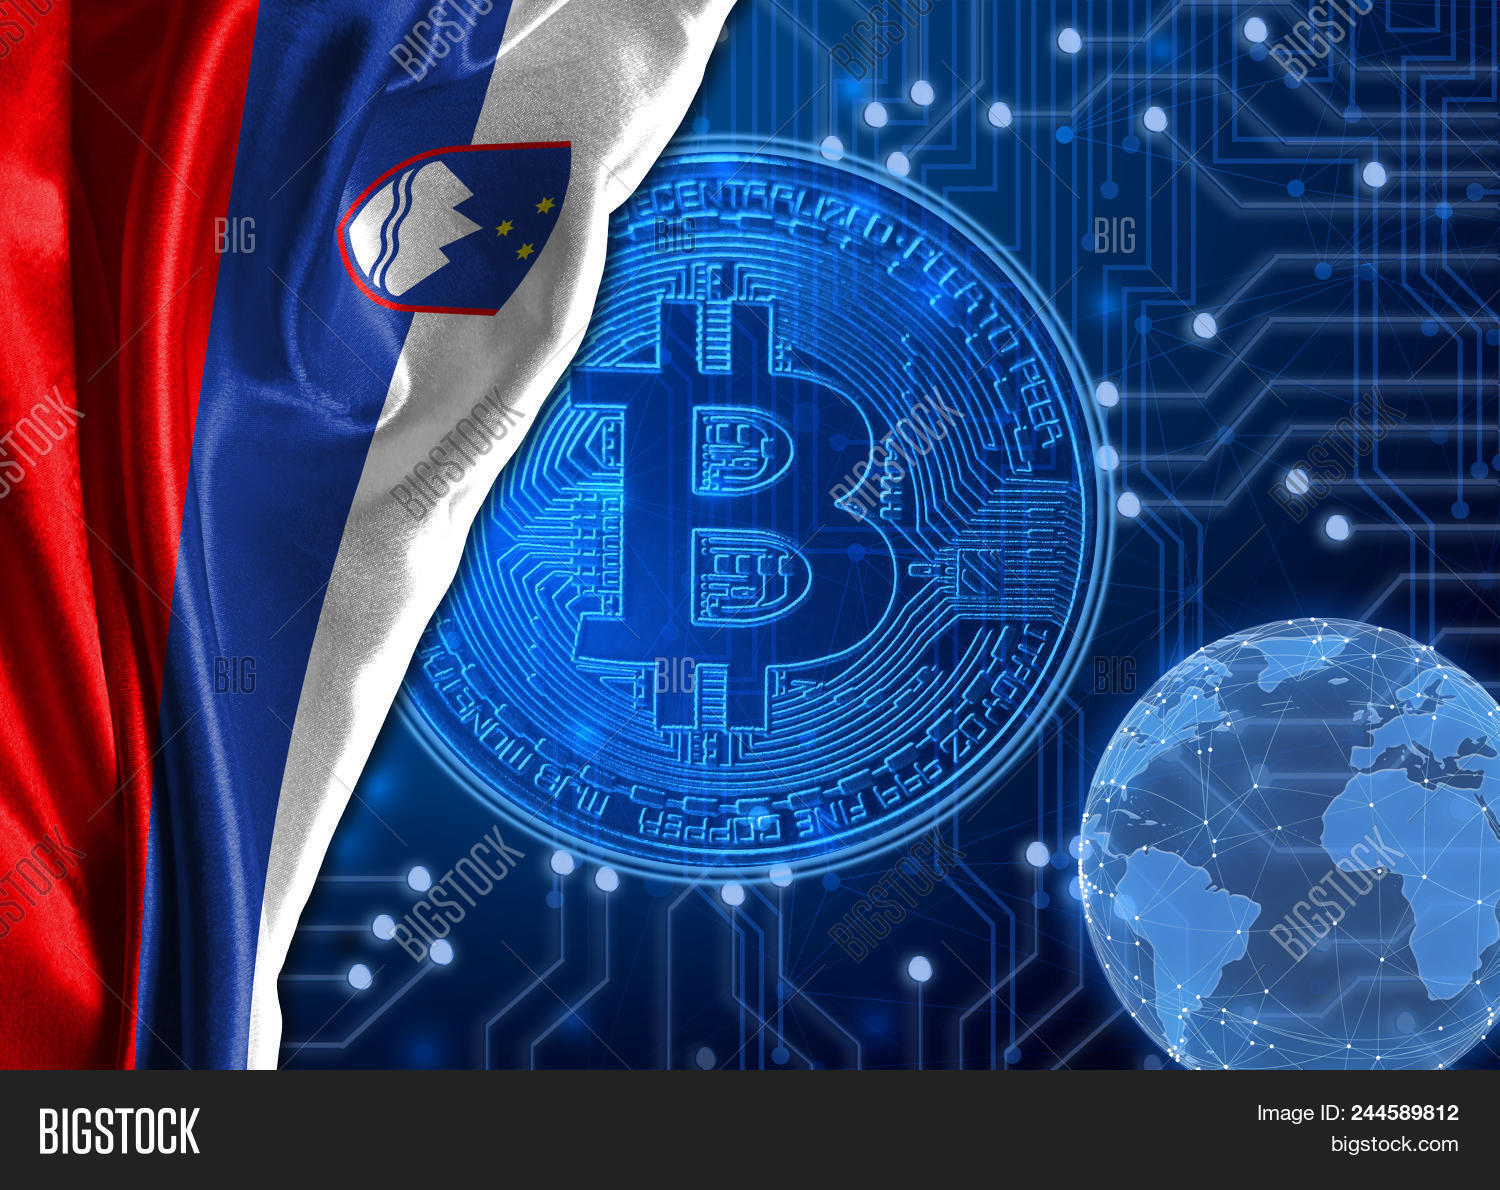 Flag Of Slovenia Is Shown Against The Background Crypto Currency Bitcoin Global World